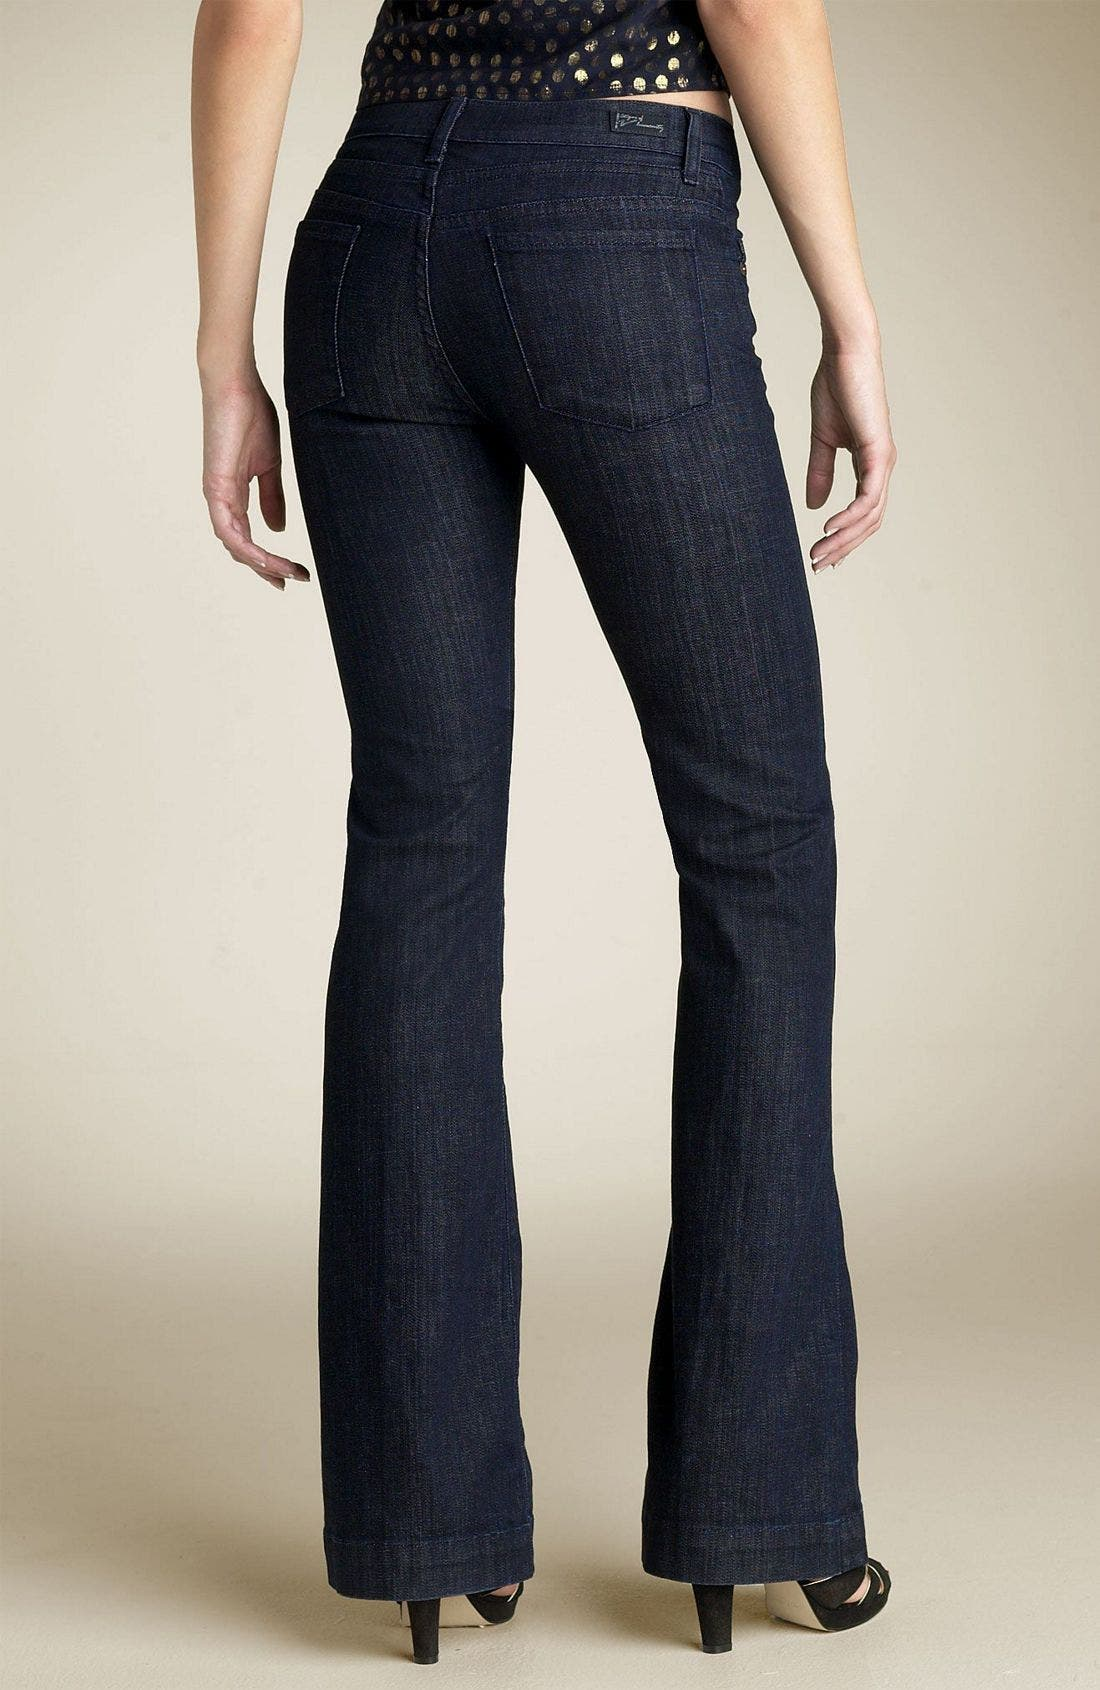 Main Image - Citizens of Humanity 'Hutton' High Rise Wide Leg Stretch Denim Trousers (Dark Paris Wash)